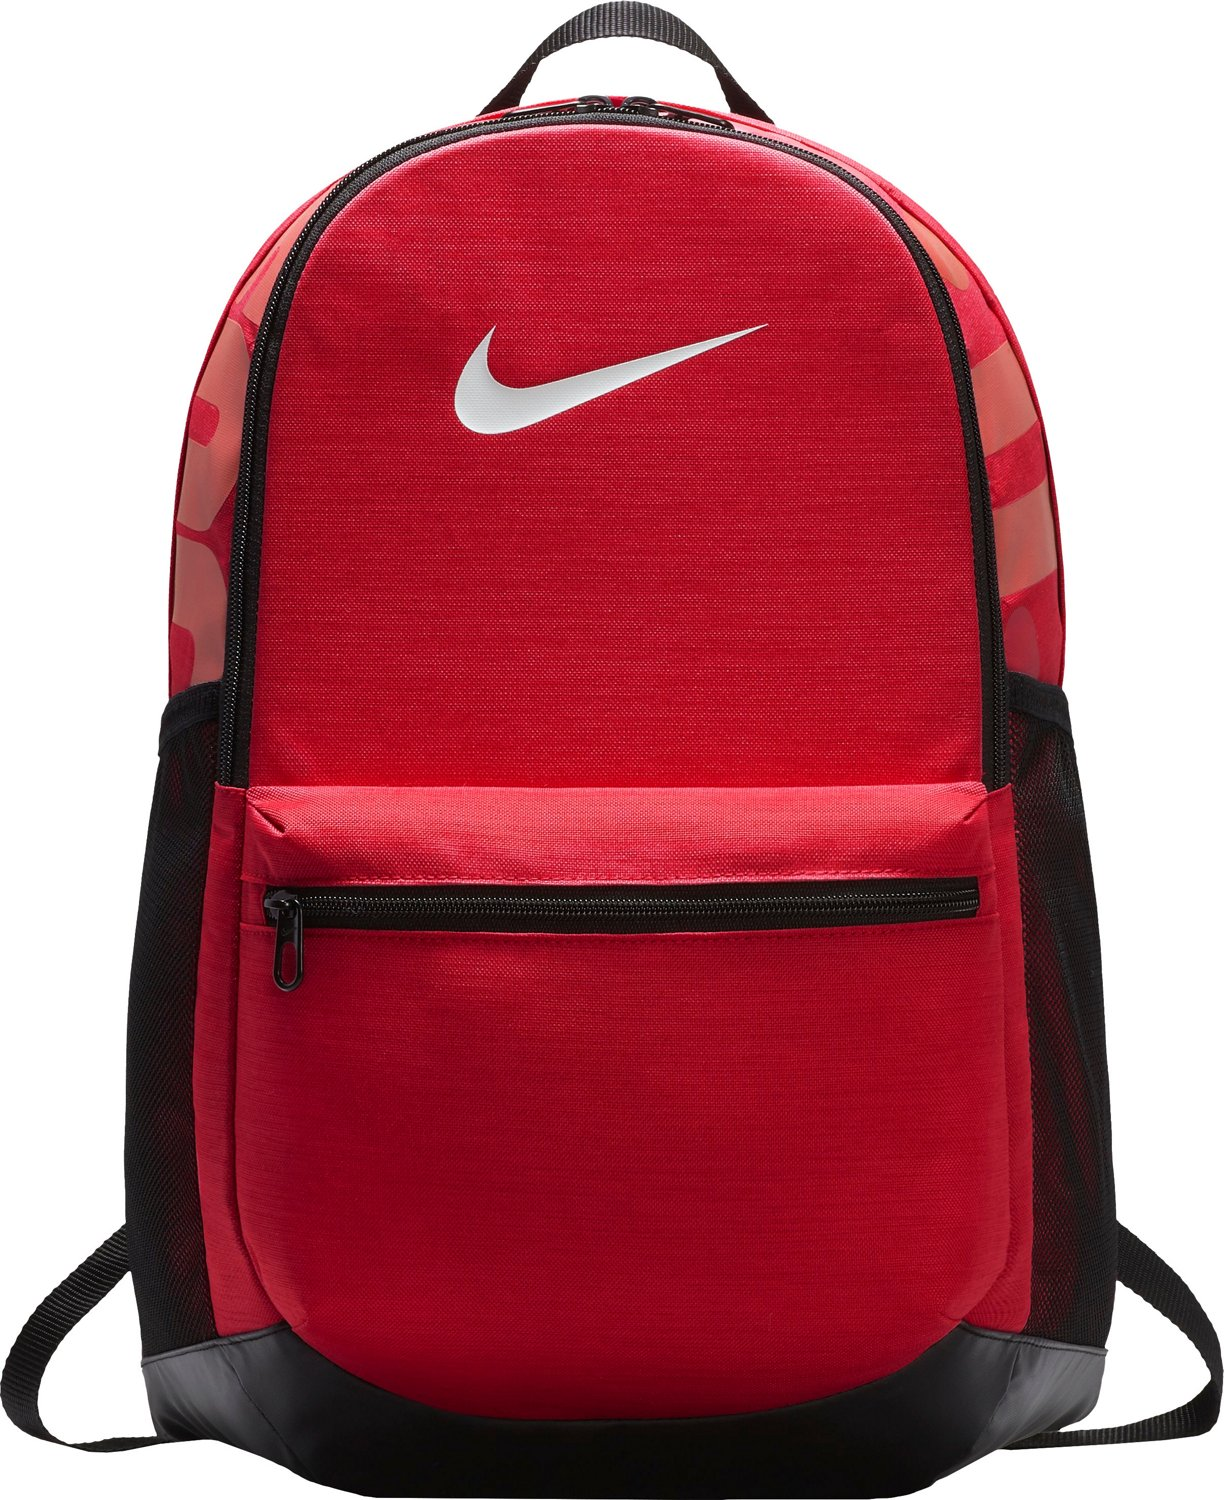 Display product reviews for Nike Brasilia II Backpack 9d43f83d52915